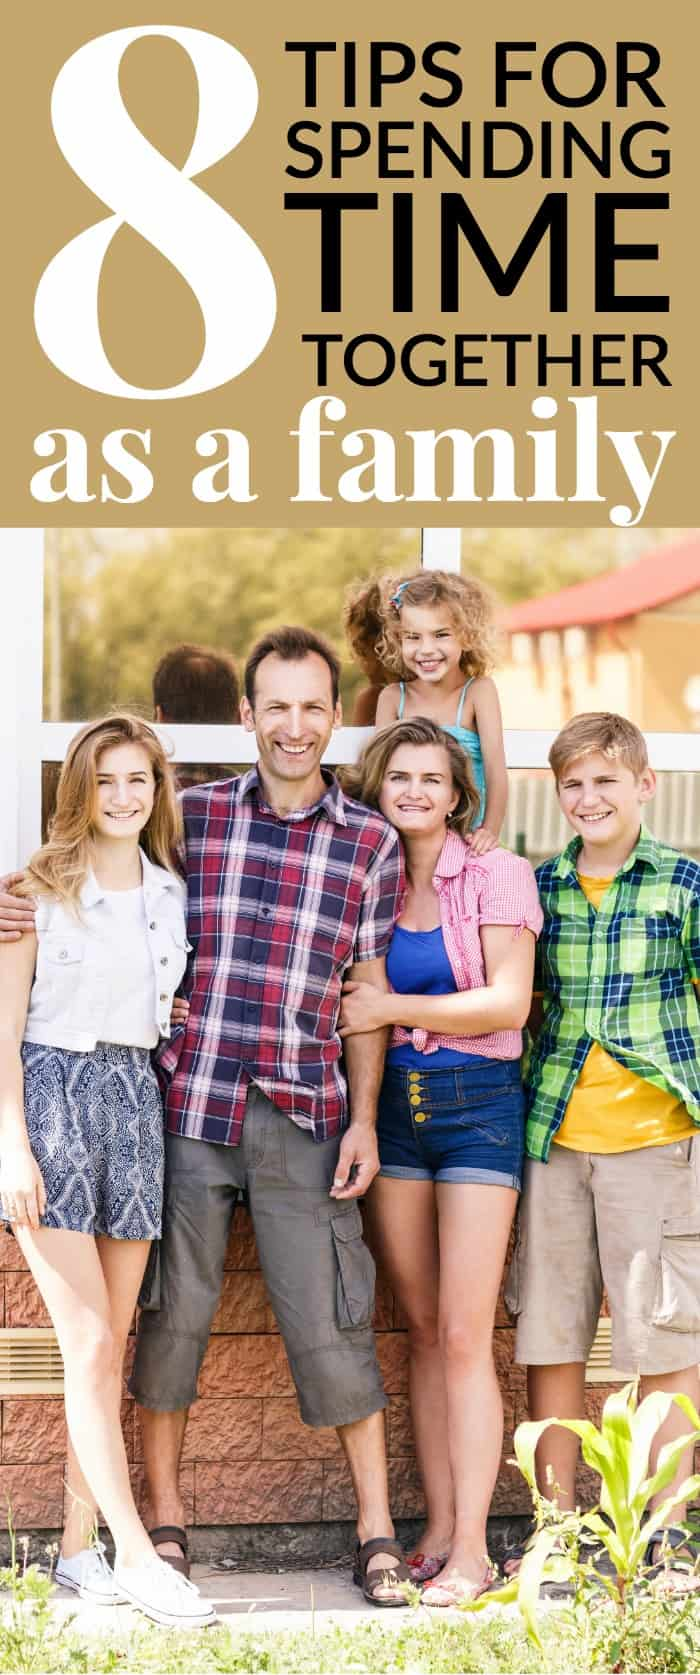 tips for spending time together as a family